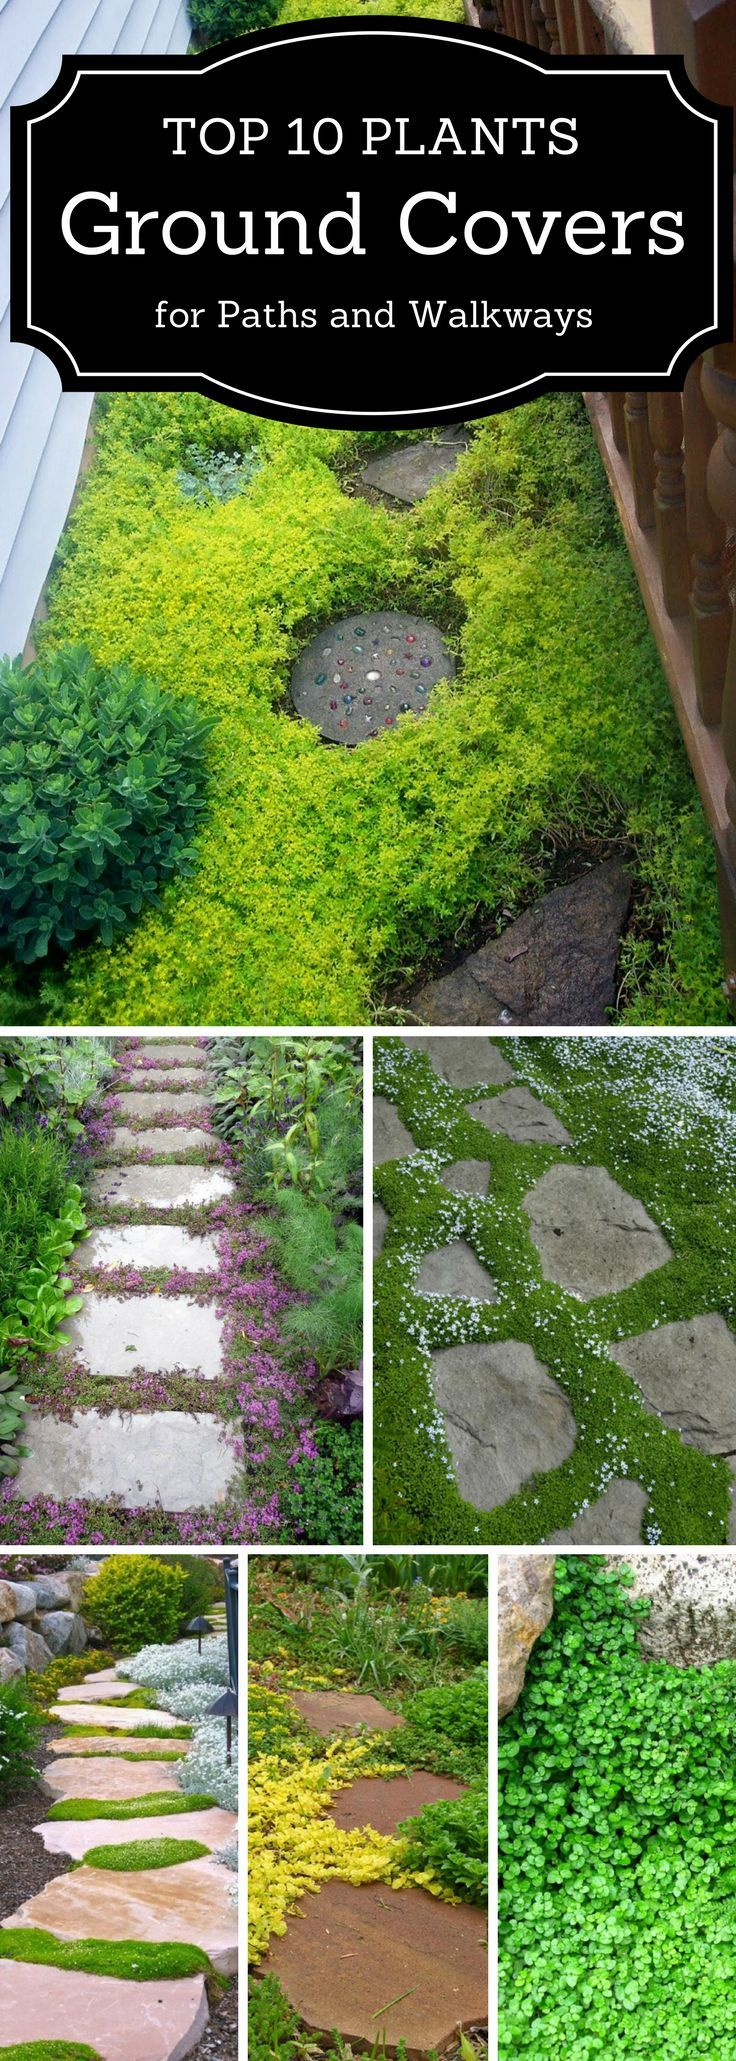 Top plants and ground cover for your paths and walkways plants